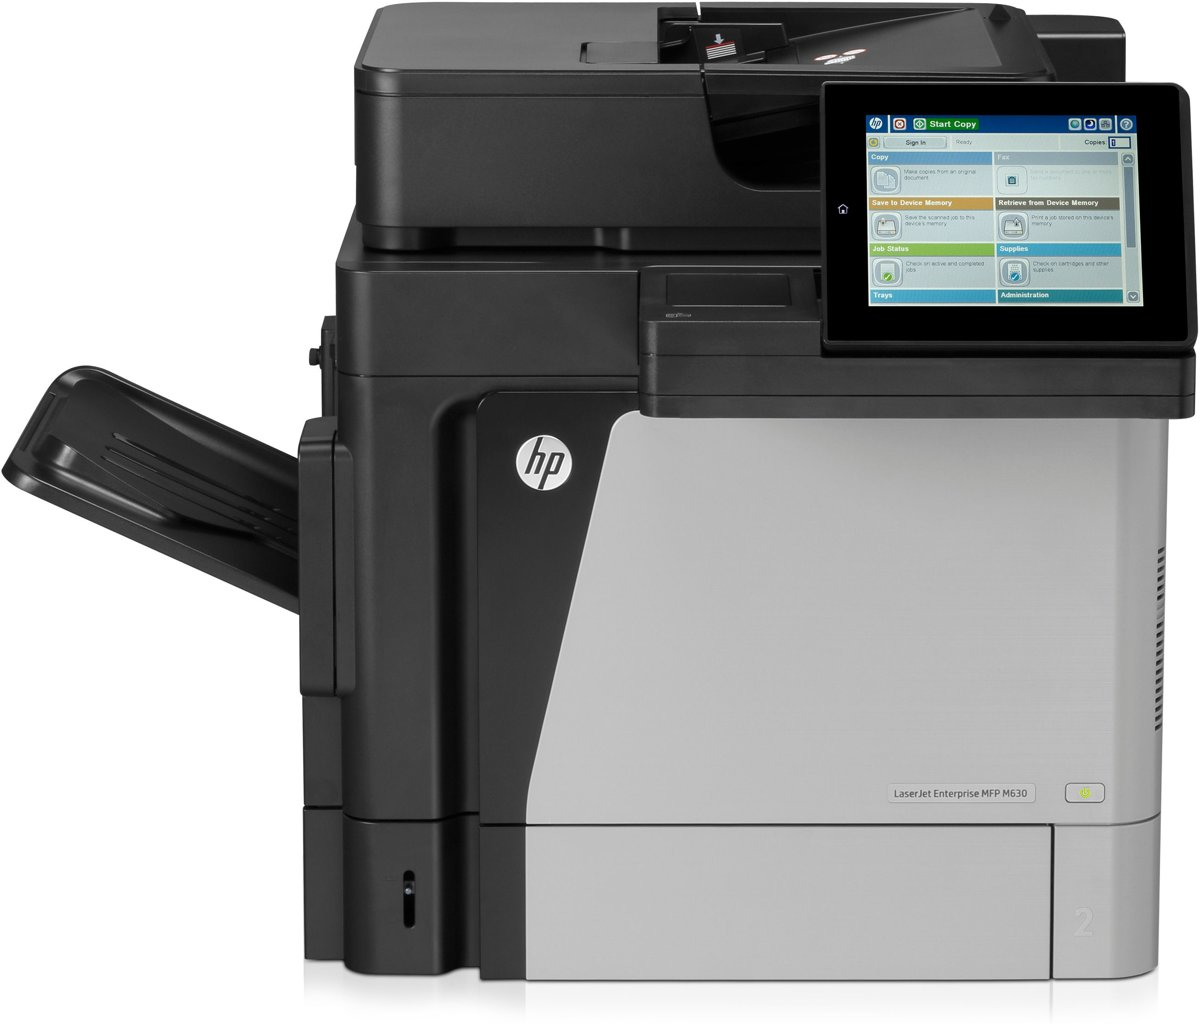 LaserJet Entrprise MFP M630dn - All-in-One Laserprinter